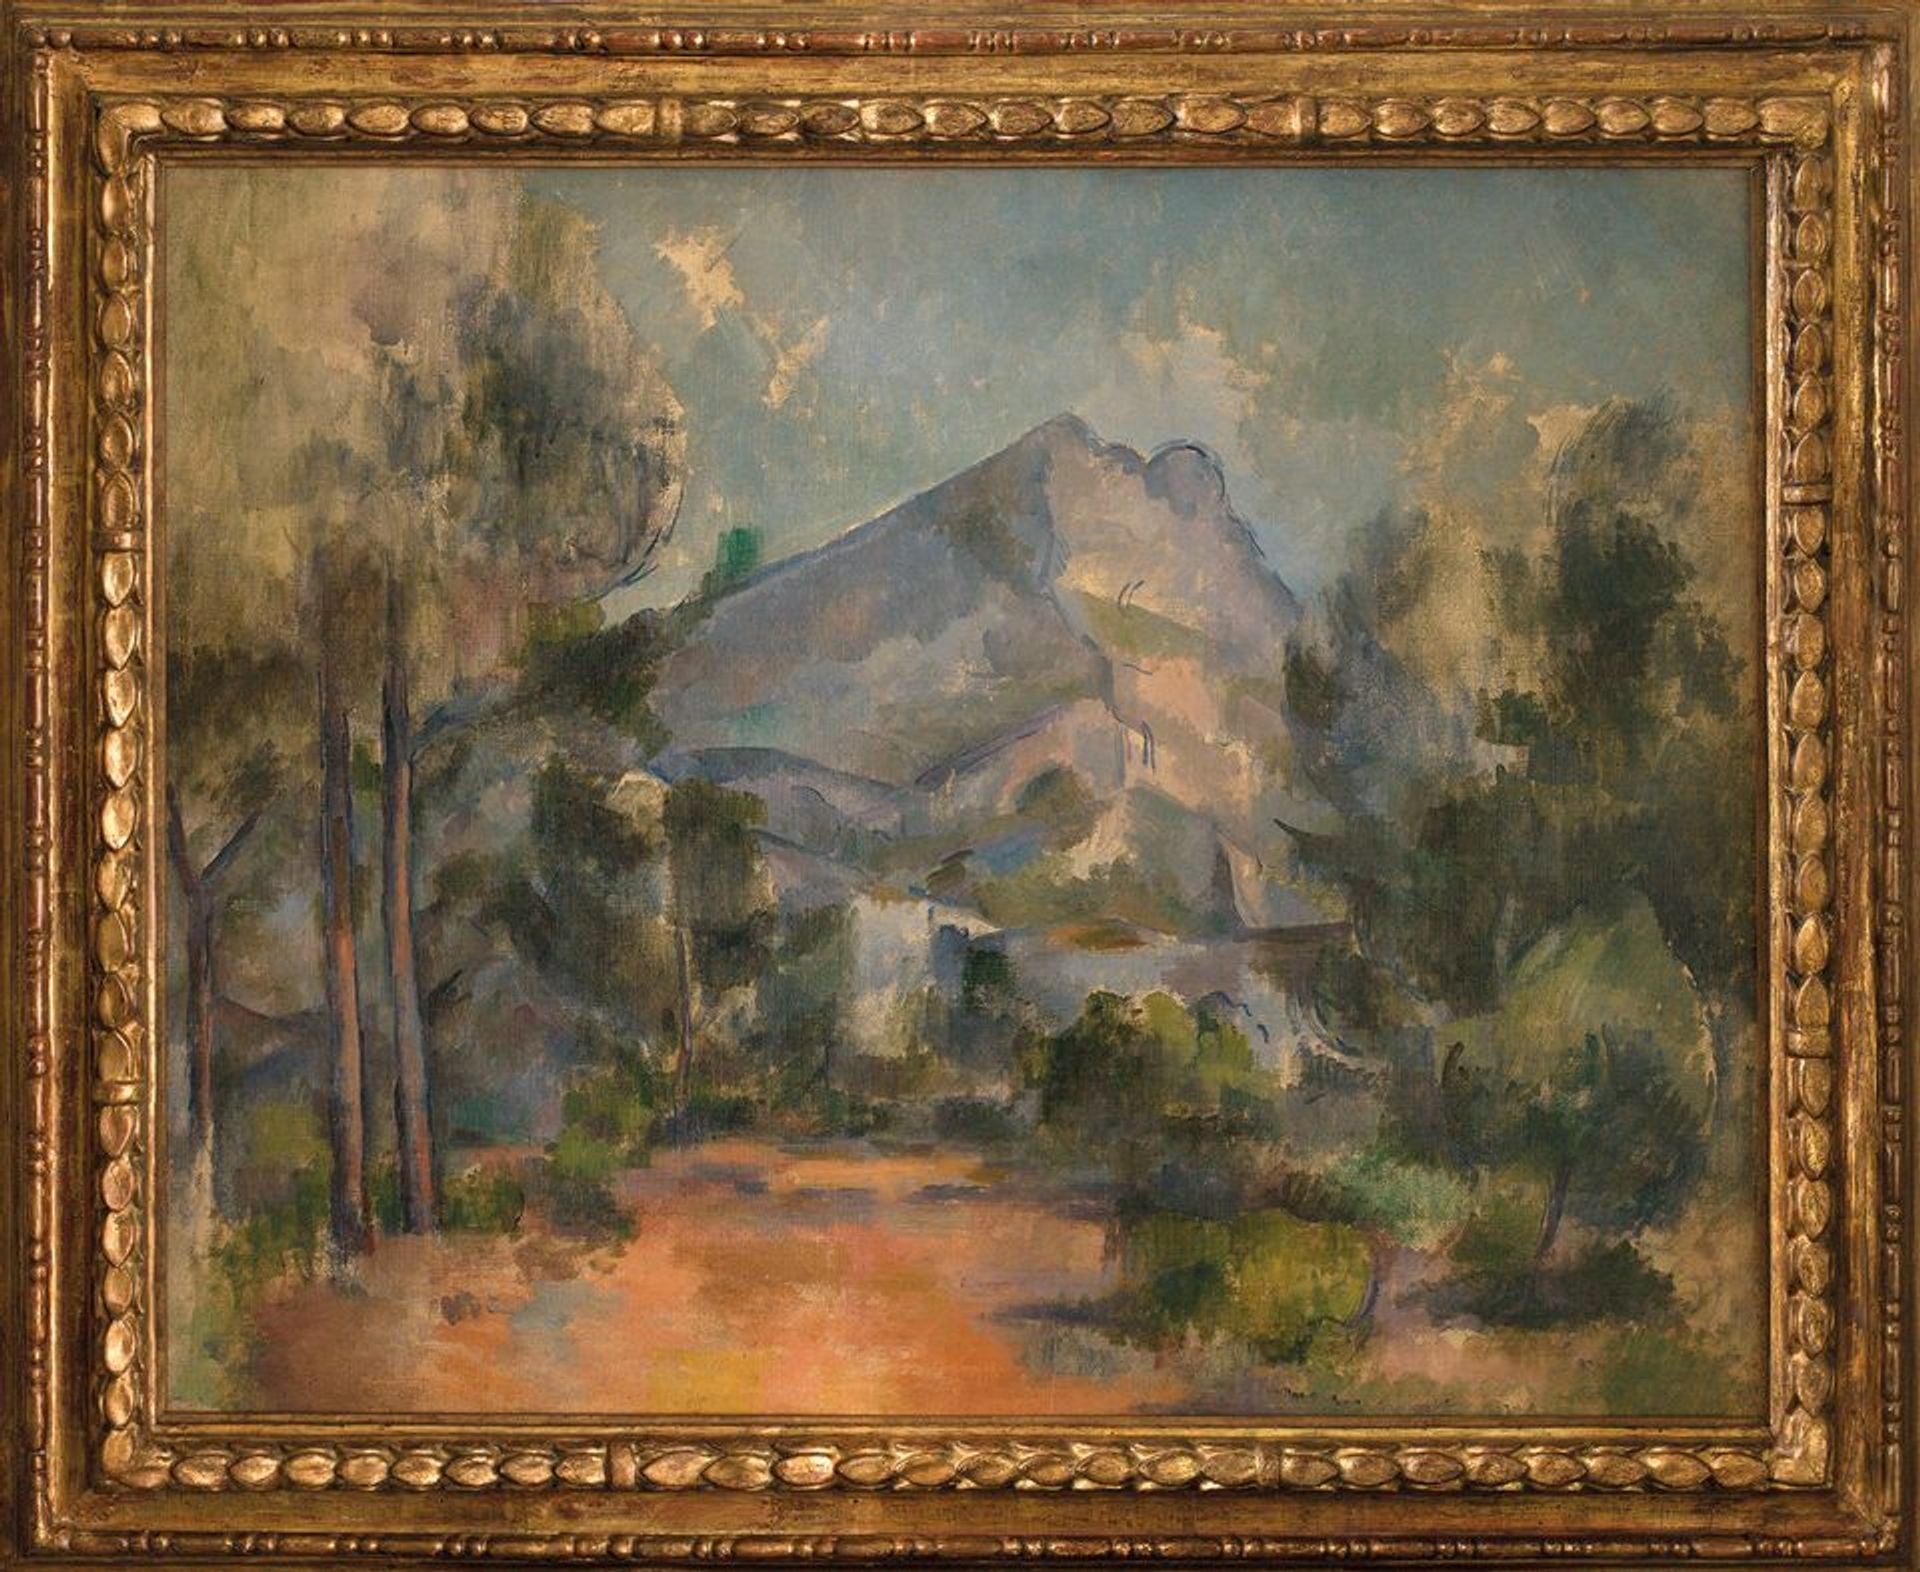 The Kunstmuseum Bern and the heirs of Paul Cézanne negotiated an innovative deal to share the contested painting La Montagne Sainte-Victoire (1897) © Kunstmuseum Bern